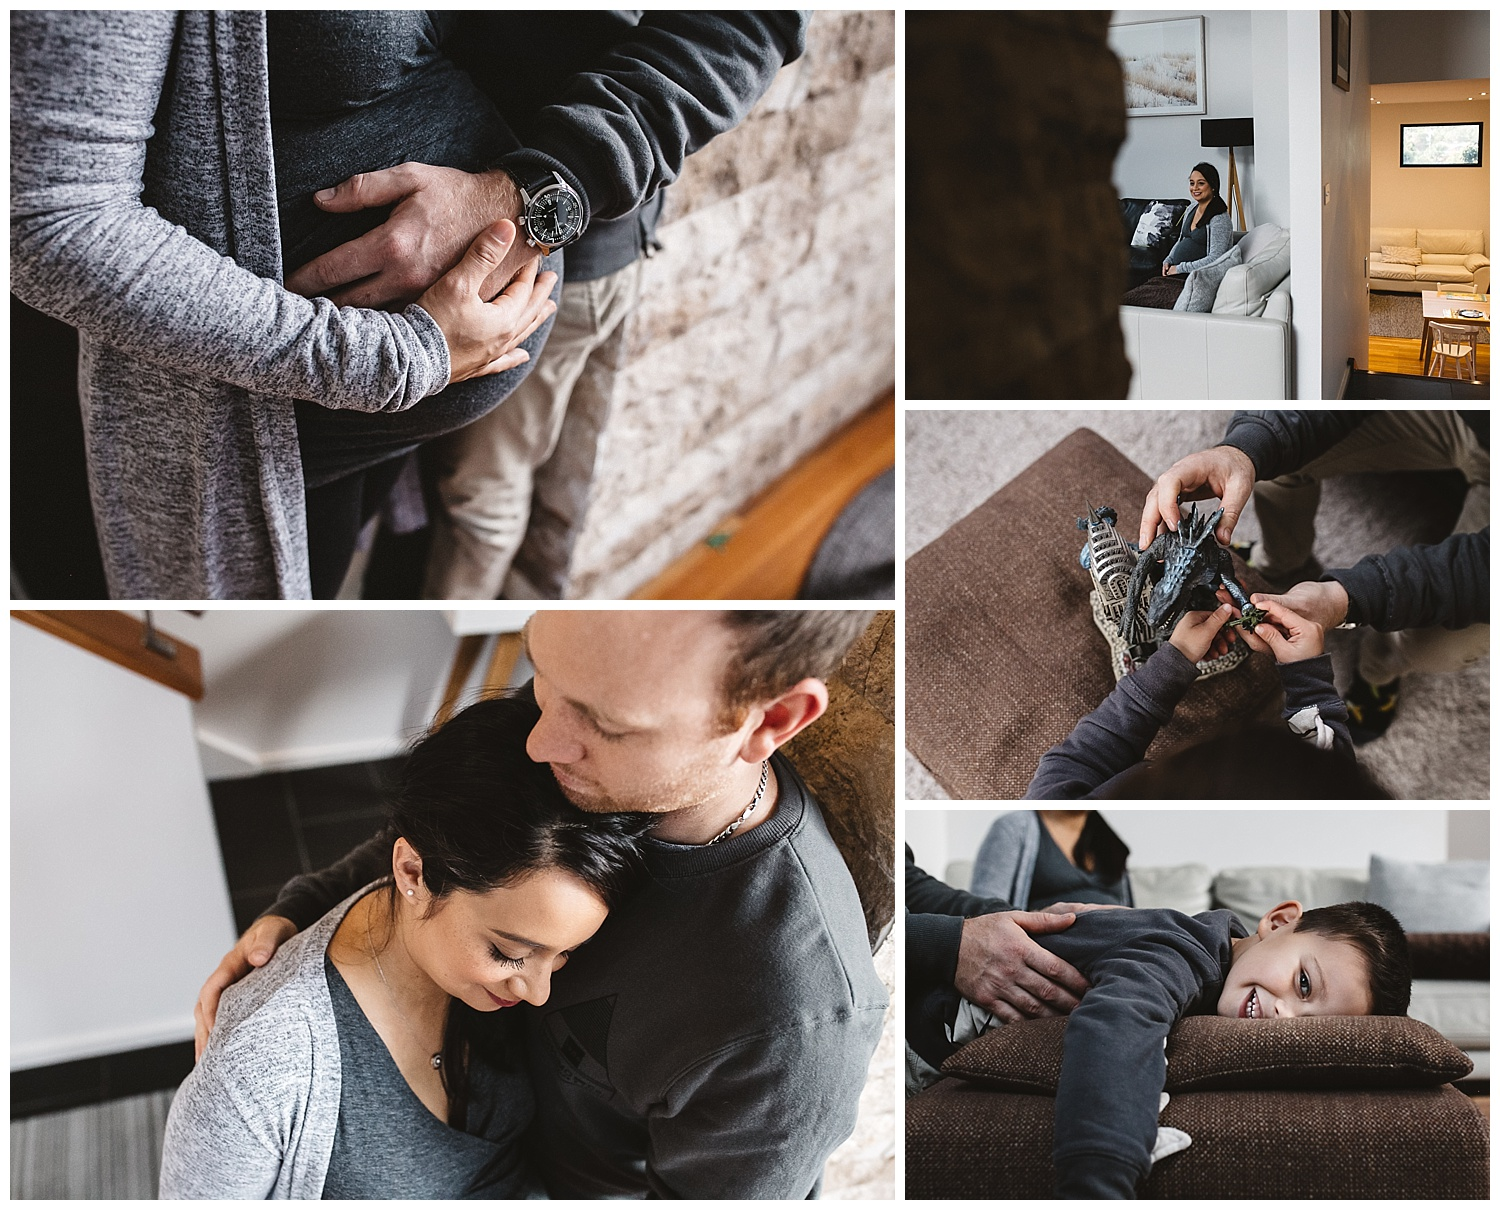 Bayside newborn photography in home session let's tell your story